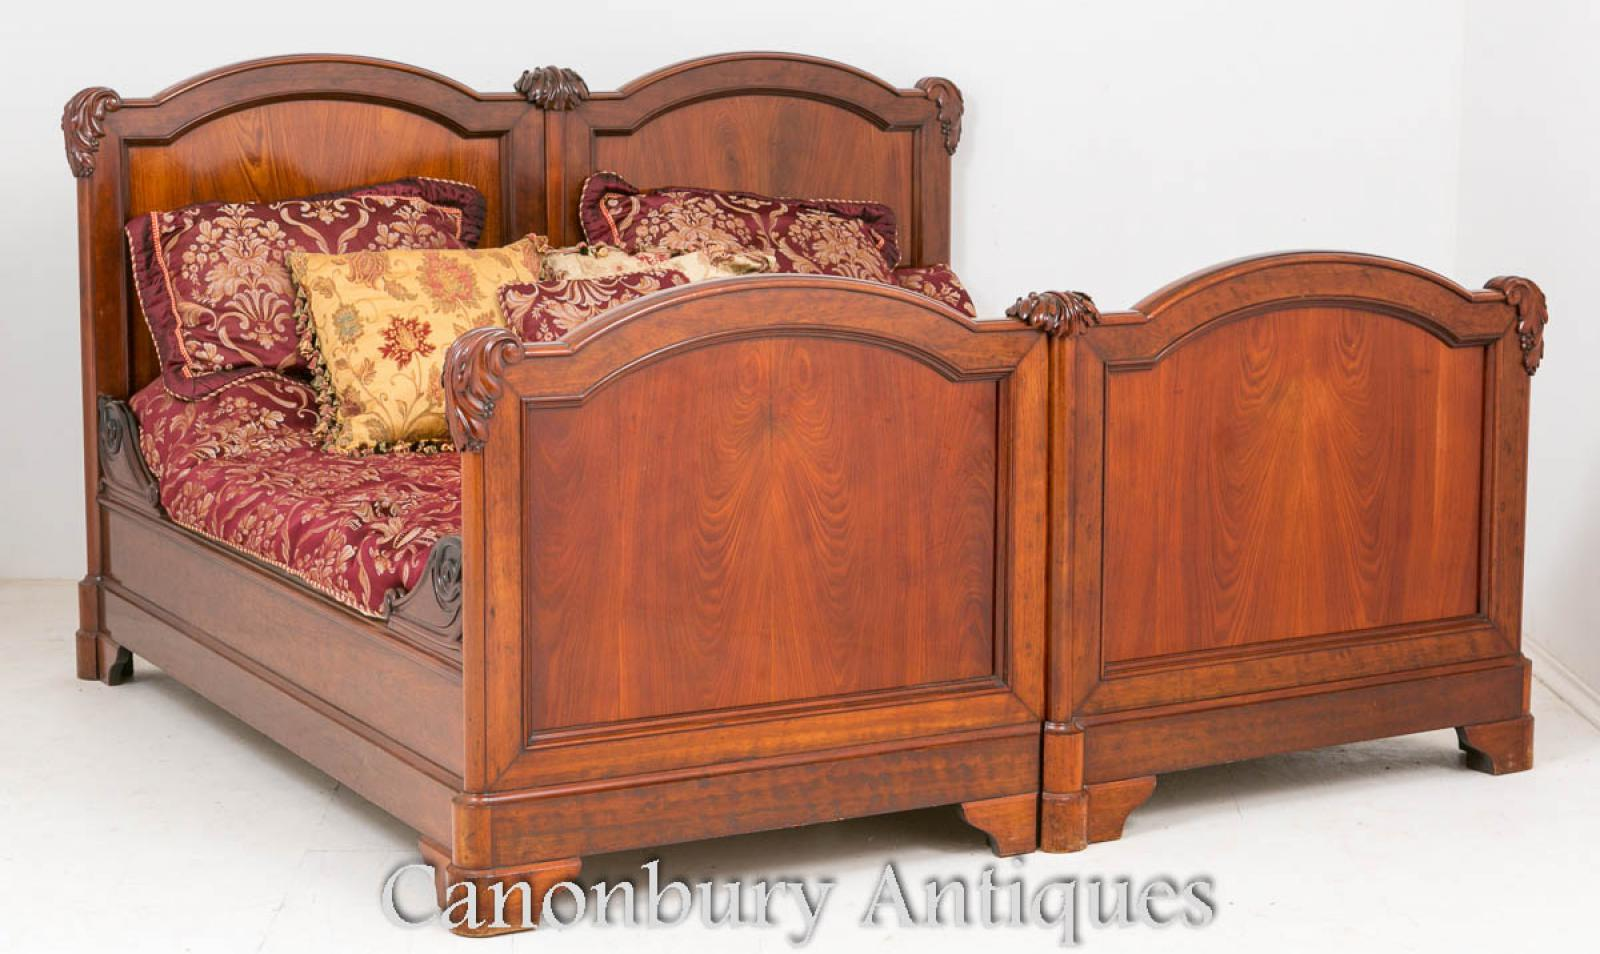 Antique French Mahogany Double Bed Carved Bedroom Furniture 1870 Ebay